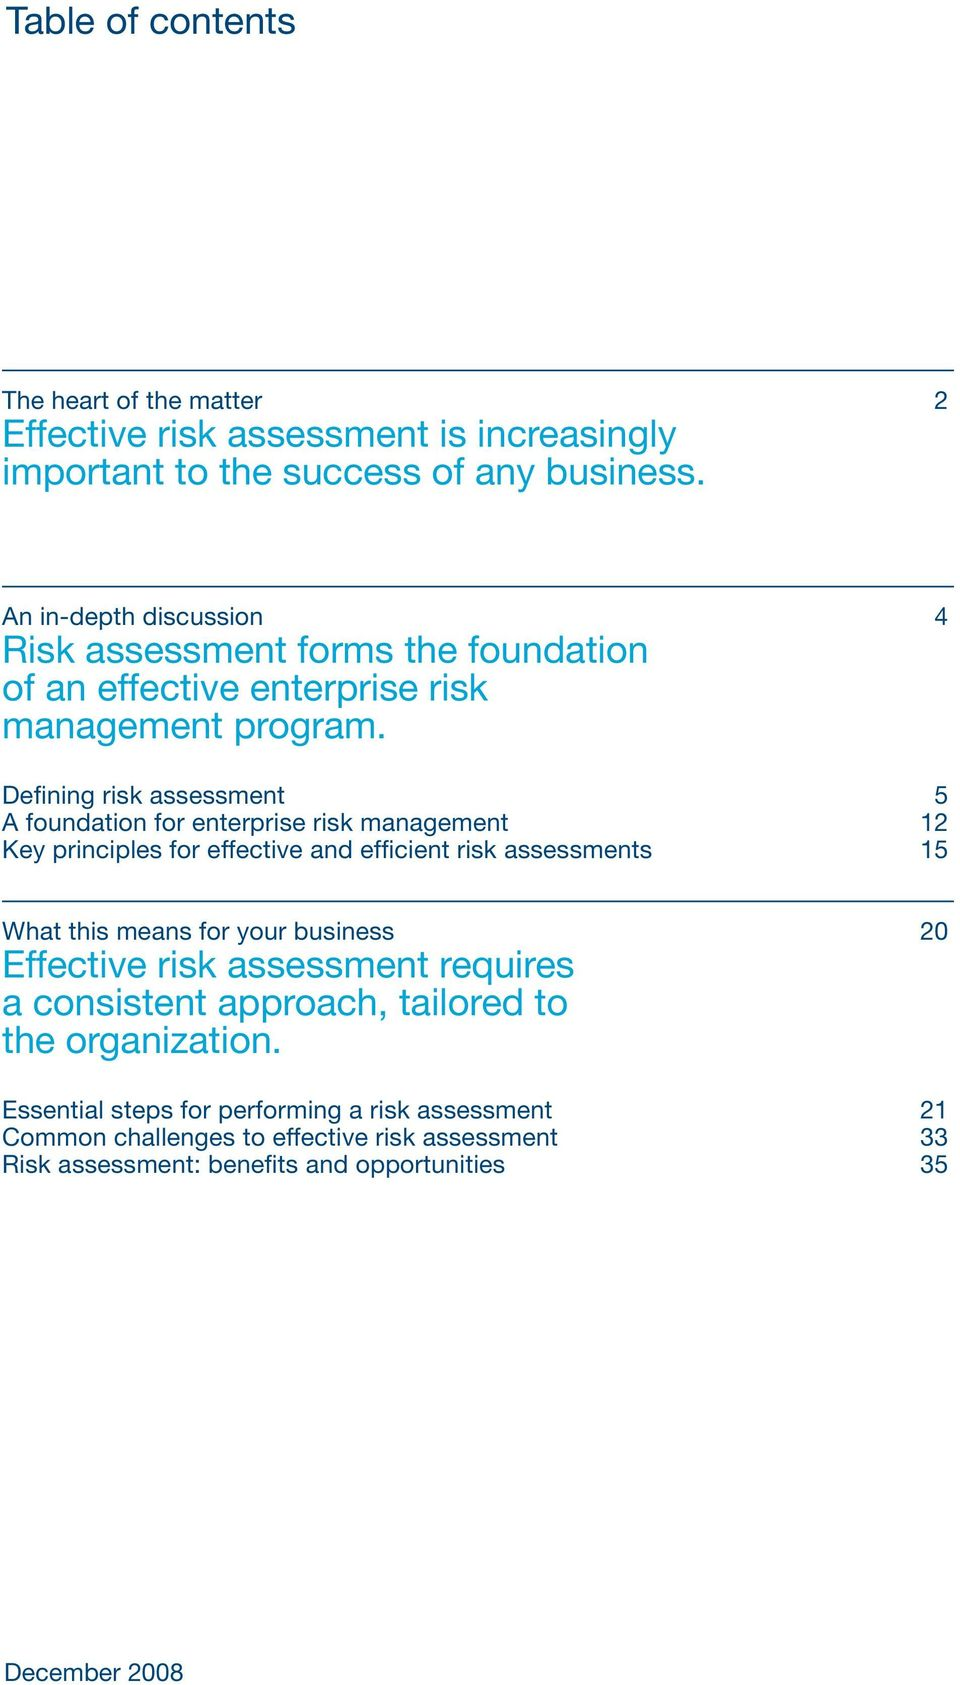 Defining risk assessment 5 A foundation for enterprise risk management 12 Key principles for effective and efficient risk assessments 15 What this means for your